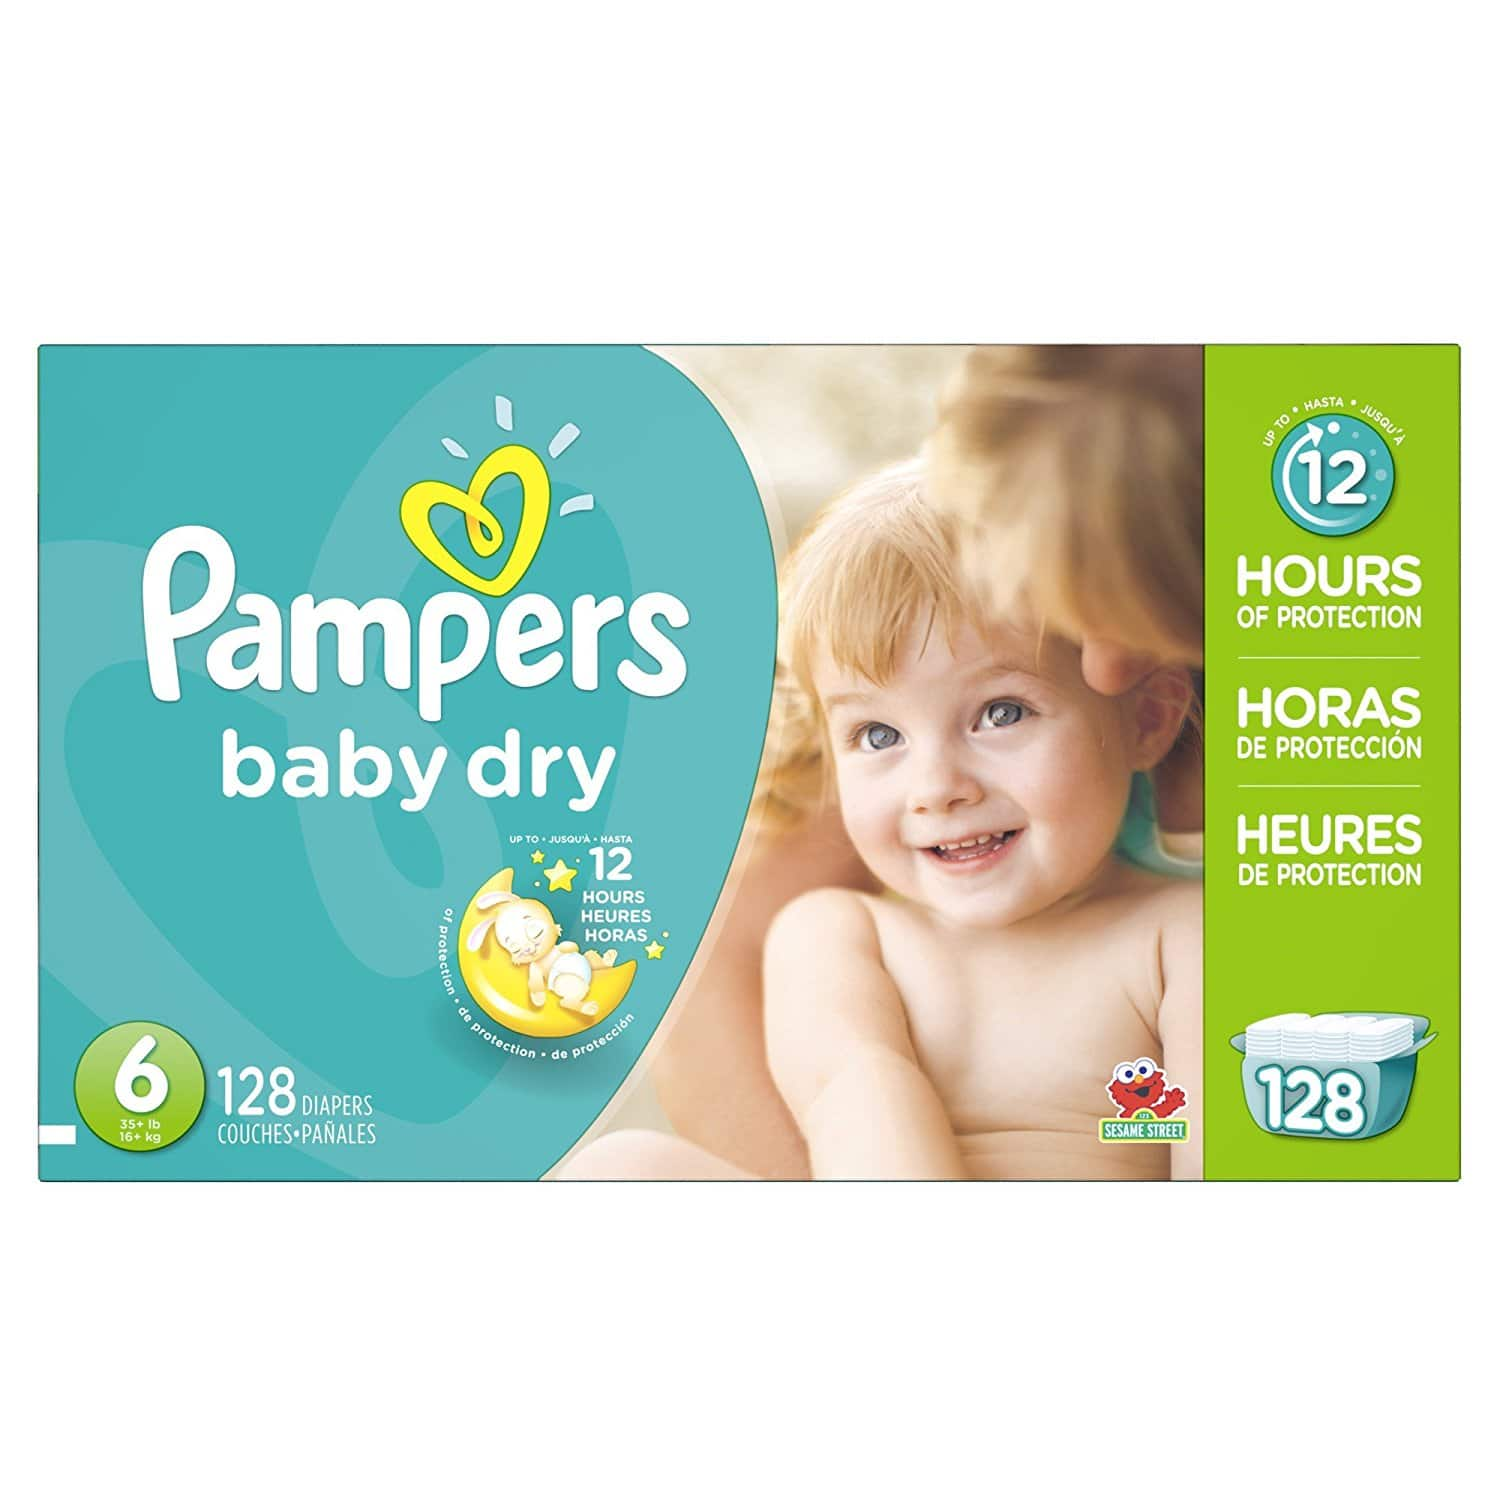 Pampers Baby Dry Diapers Economy Pack Plus, Size 6, 128 Count $25.18 @Amazon + FS w/ prime